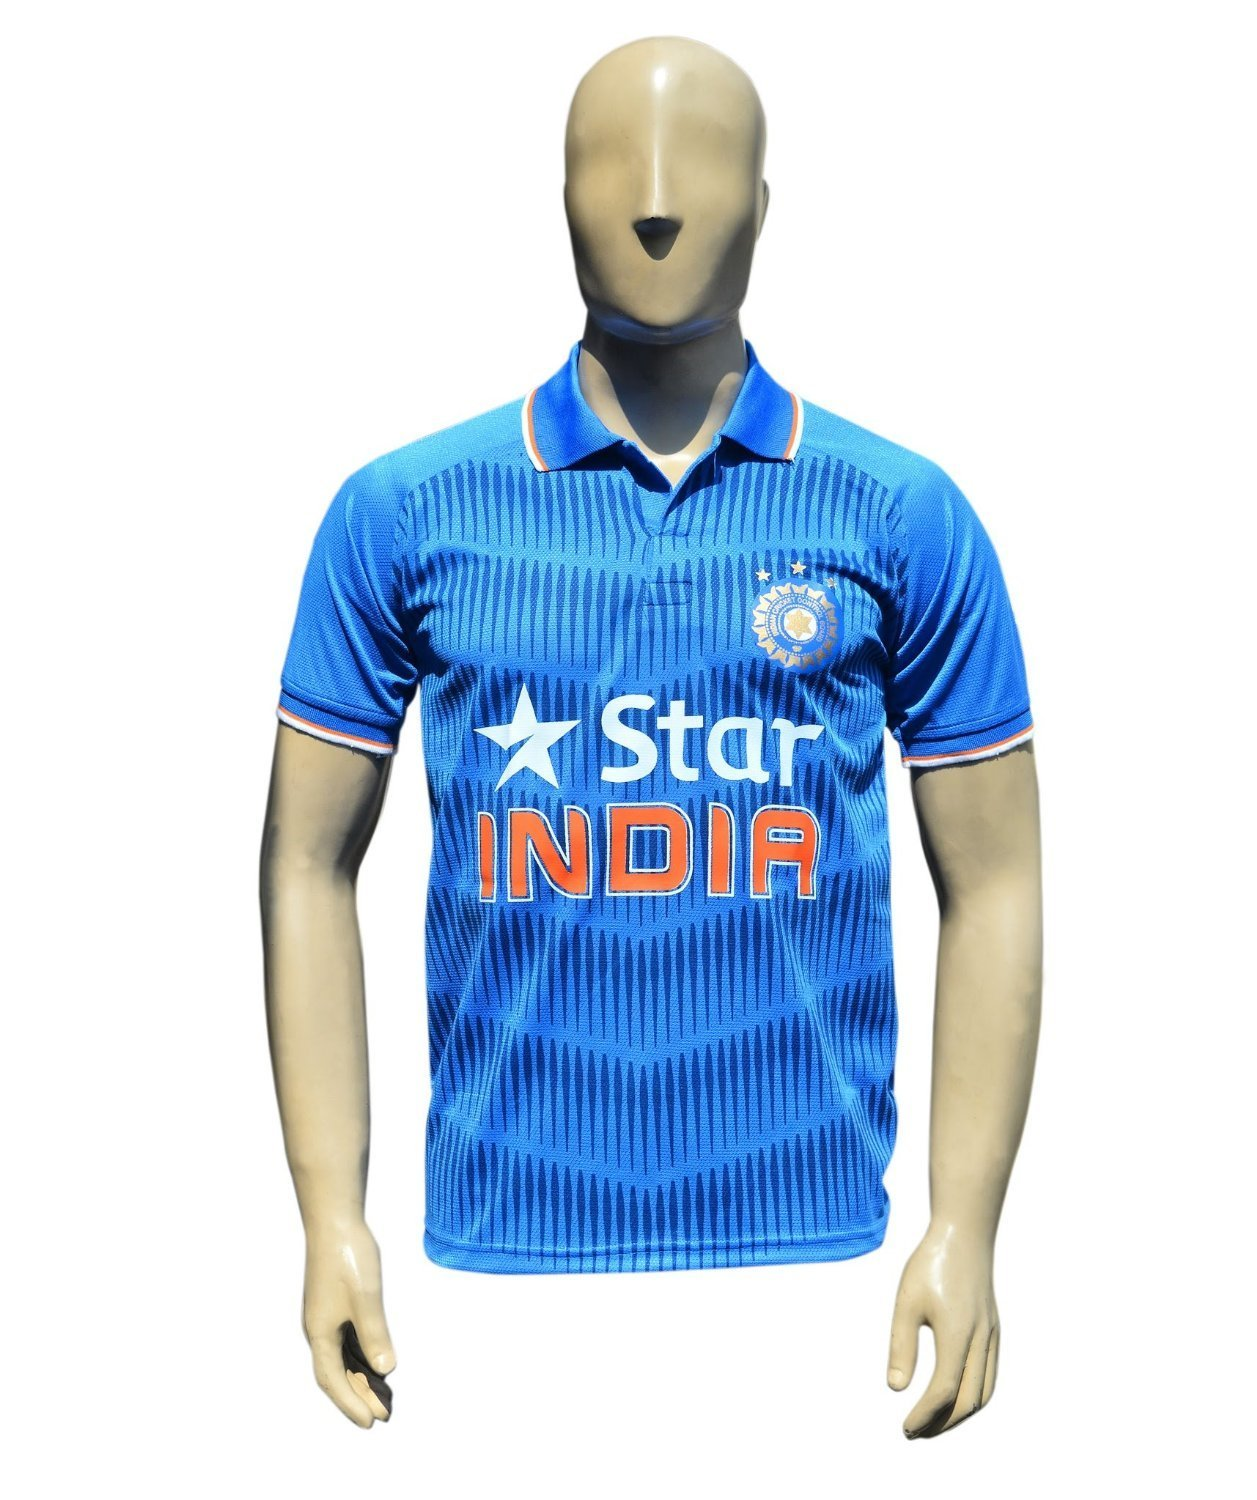 Design your own t shirt india cash on delivery - Buy X3 Team India Odi Cricket Supporter Jersey 2015 Kids To Adult Sizes 26 Age 5 Years Online At Low Prices In India Amazon In